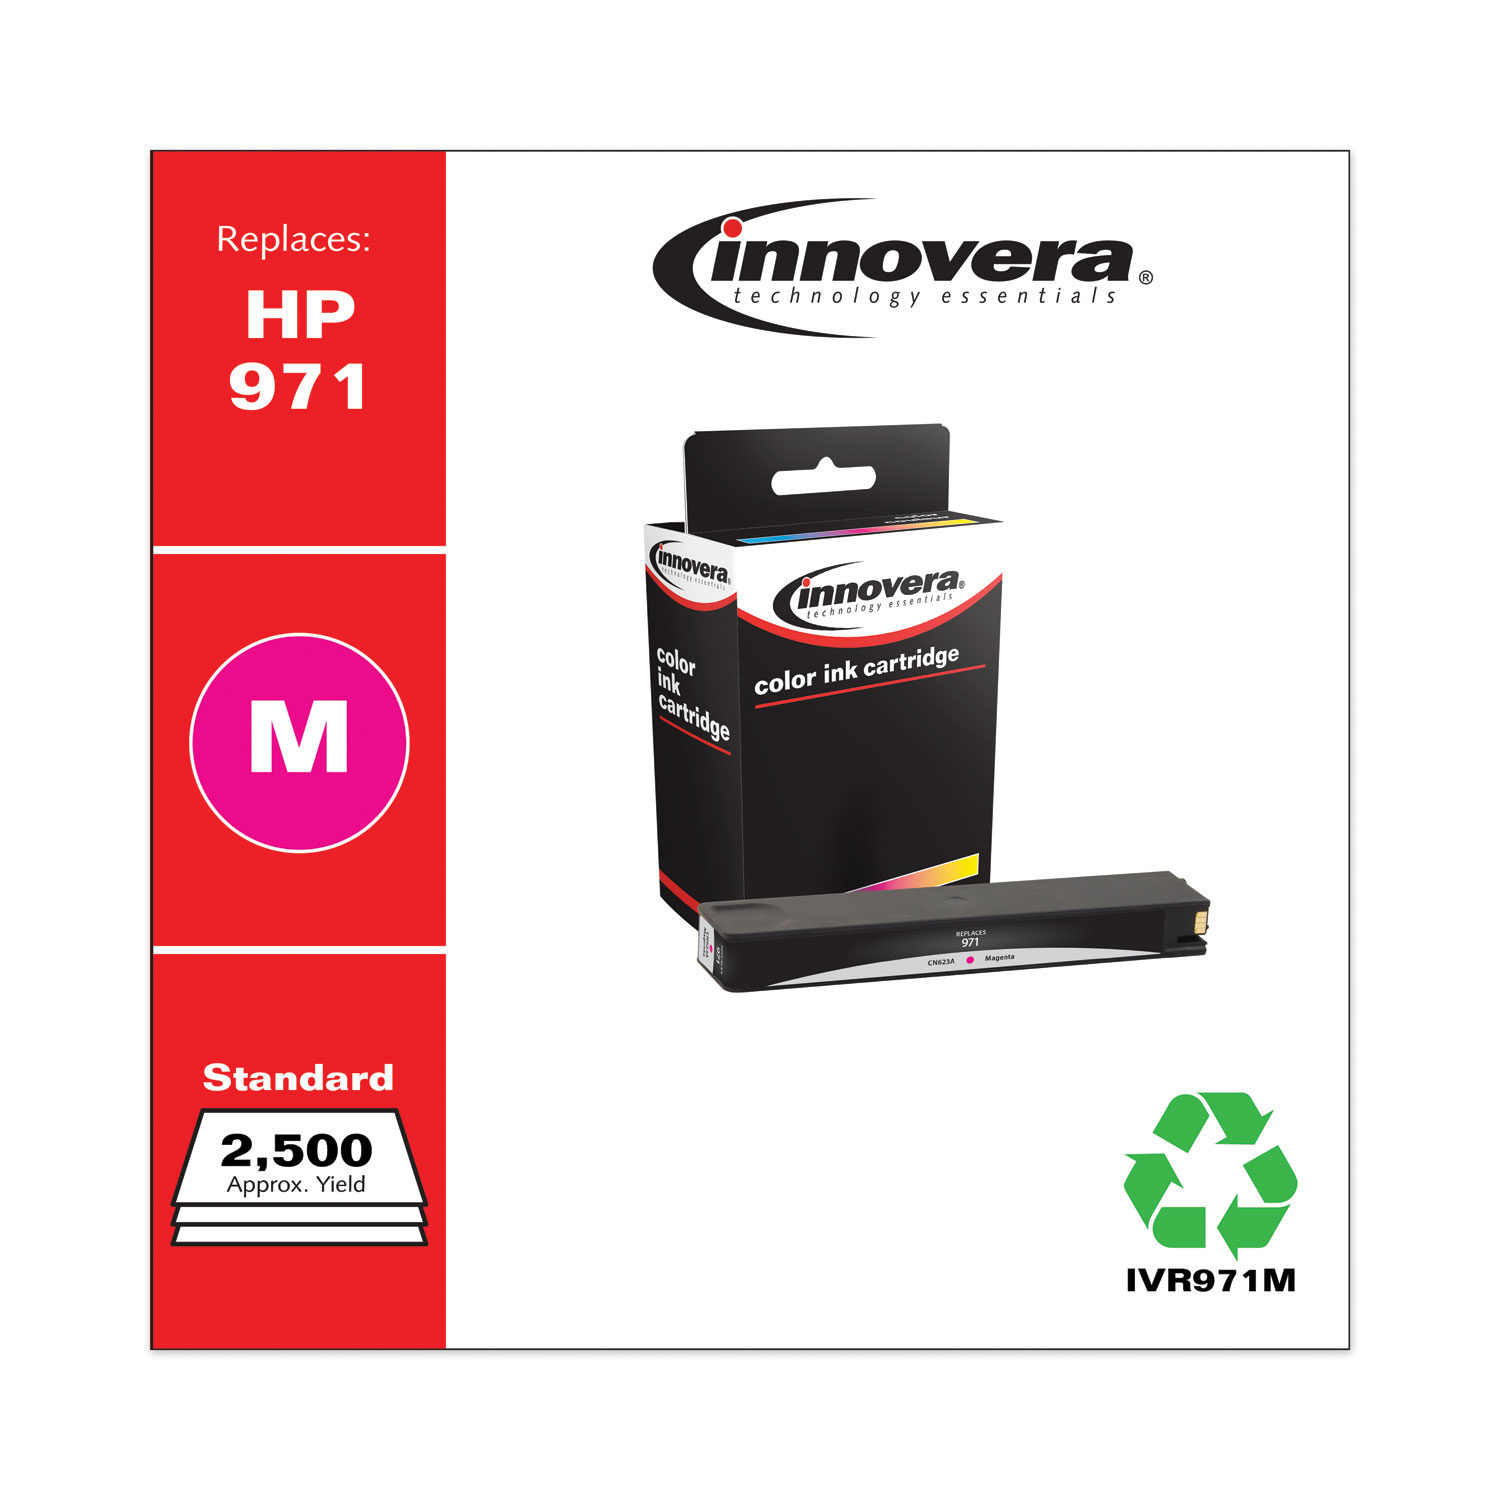 Remanufactured Magenta Ink, Replacement for HP 971 (CN623AM), 2,500 Page-Yield IVR971M